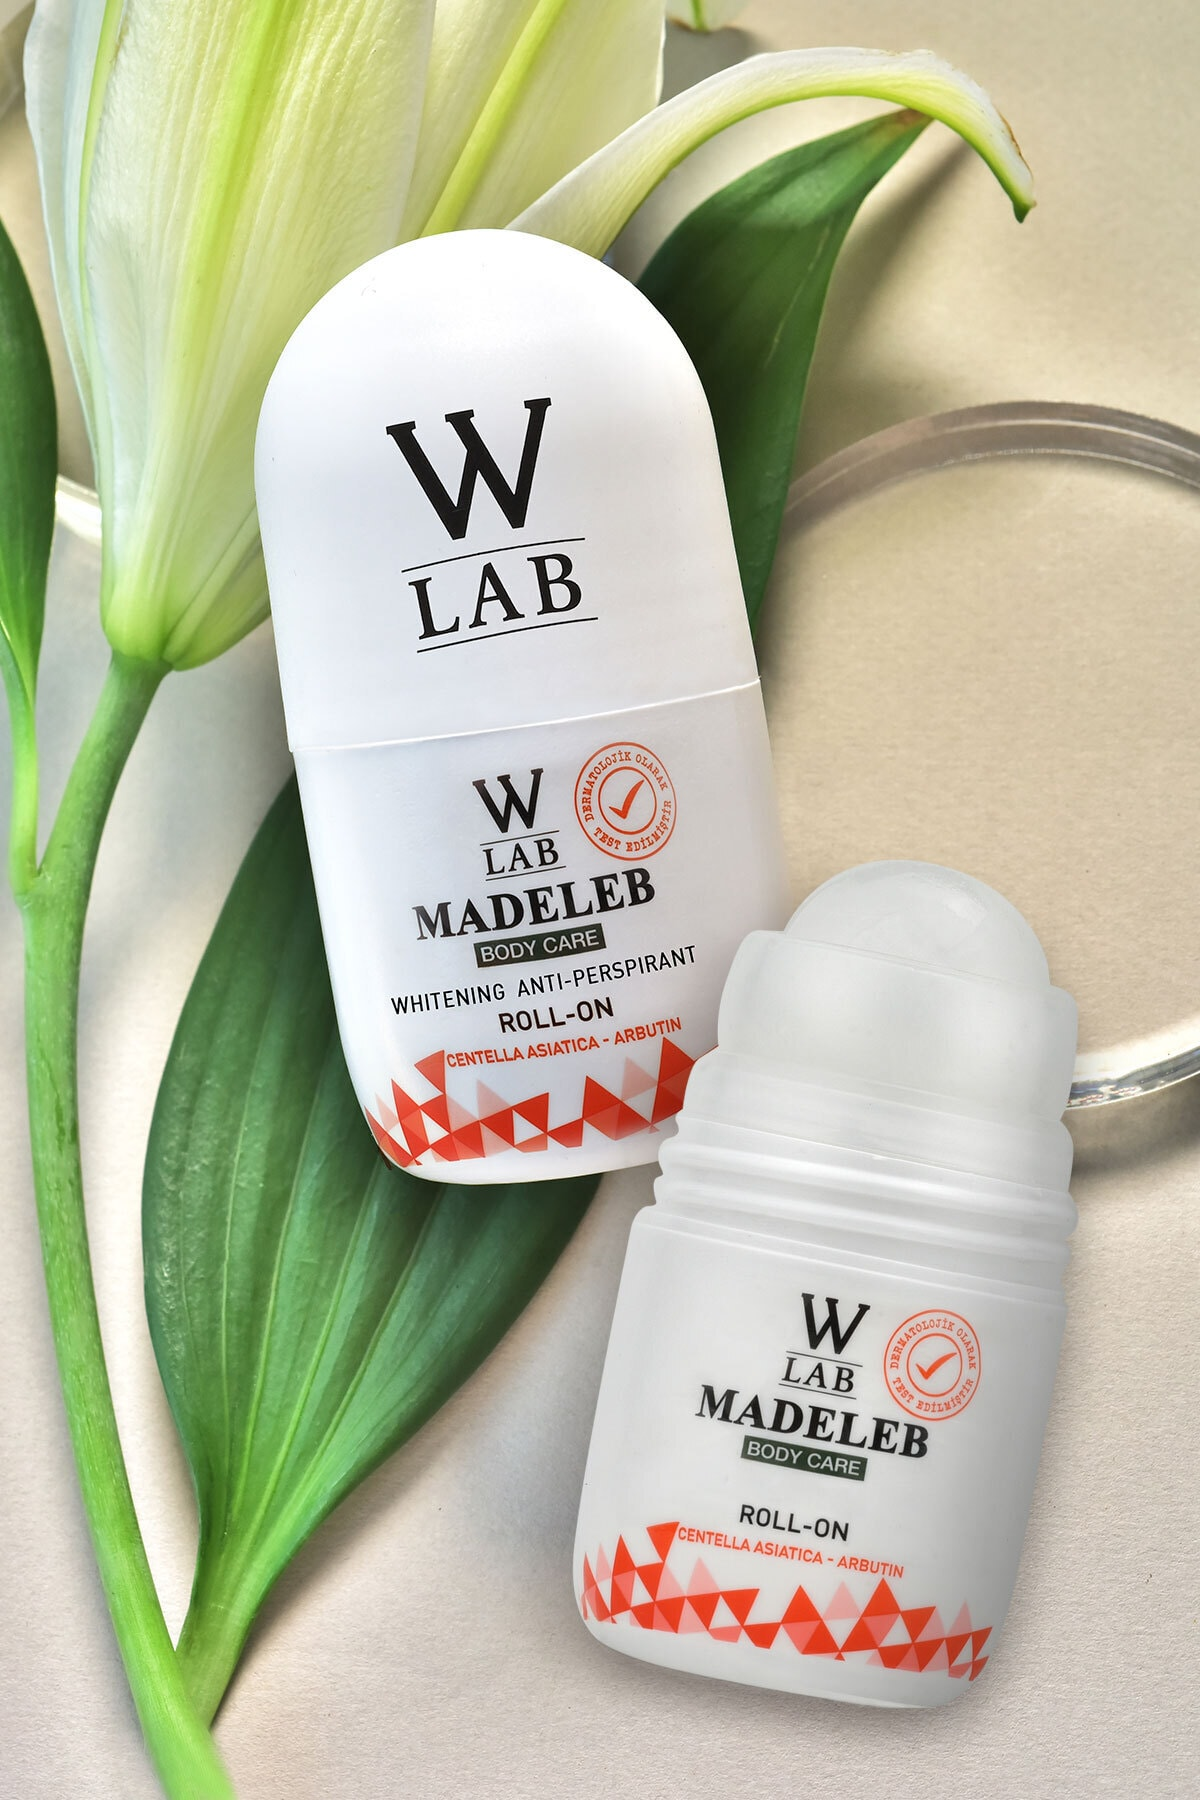 W-Lab Kozmetik W-lab Madeleb Roll-on 1